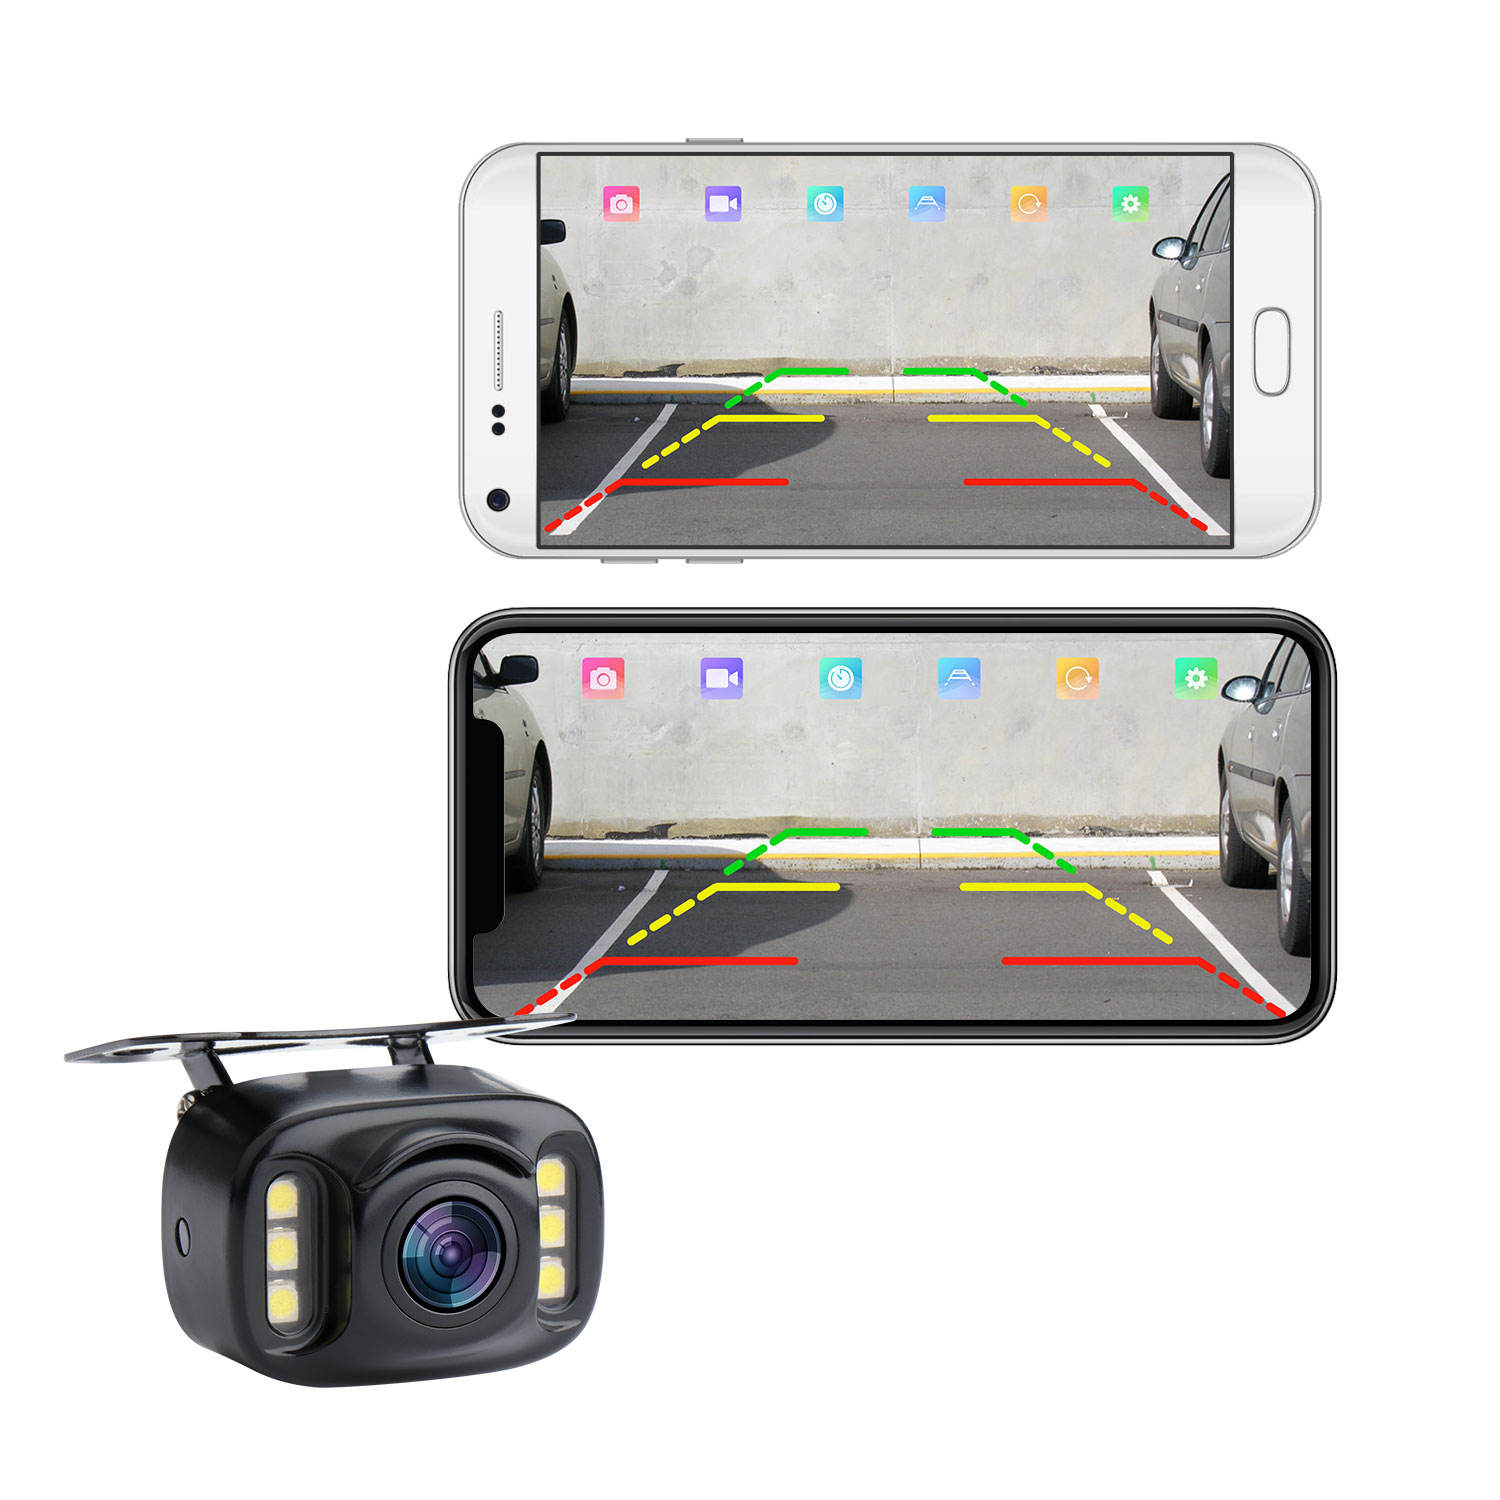 Wireless WiFi Car Rear View Reverse Parking HD Camera Night Vision Waterproofカメラ